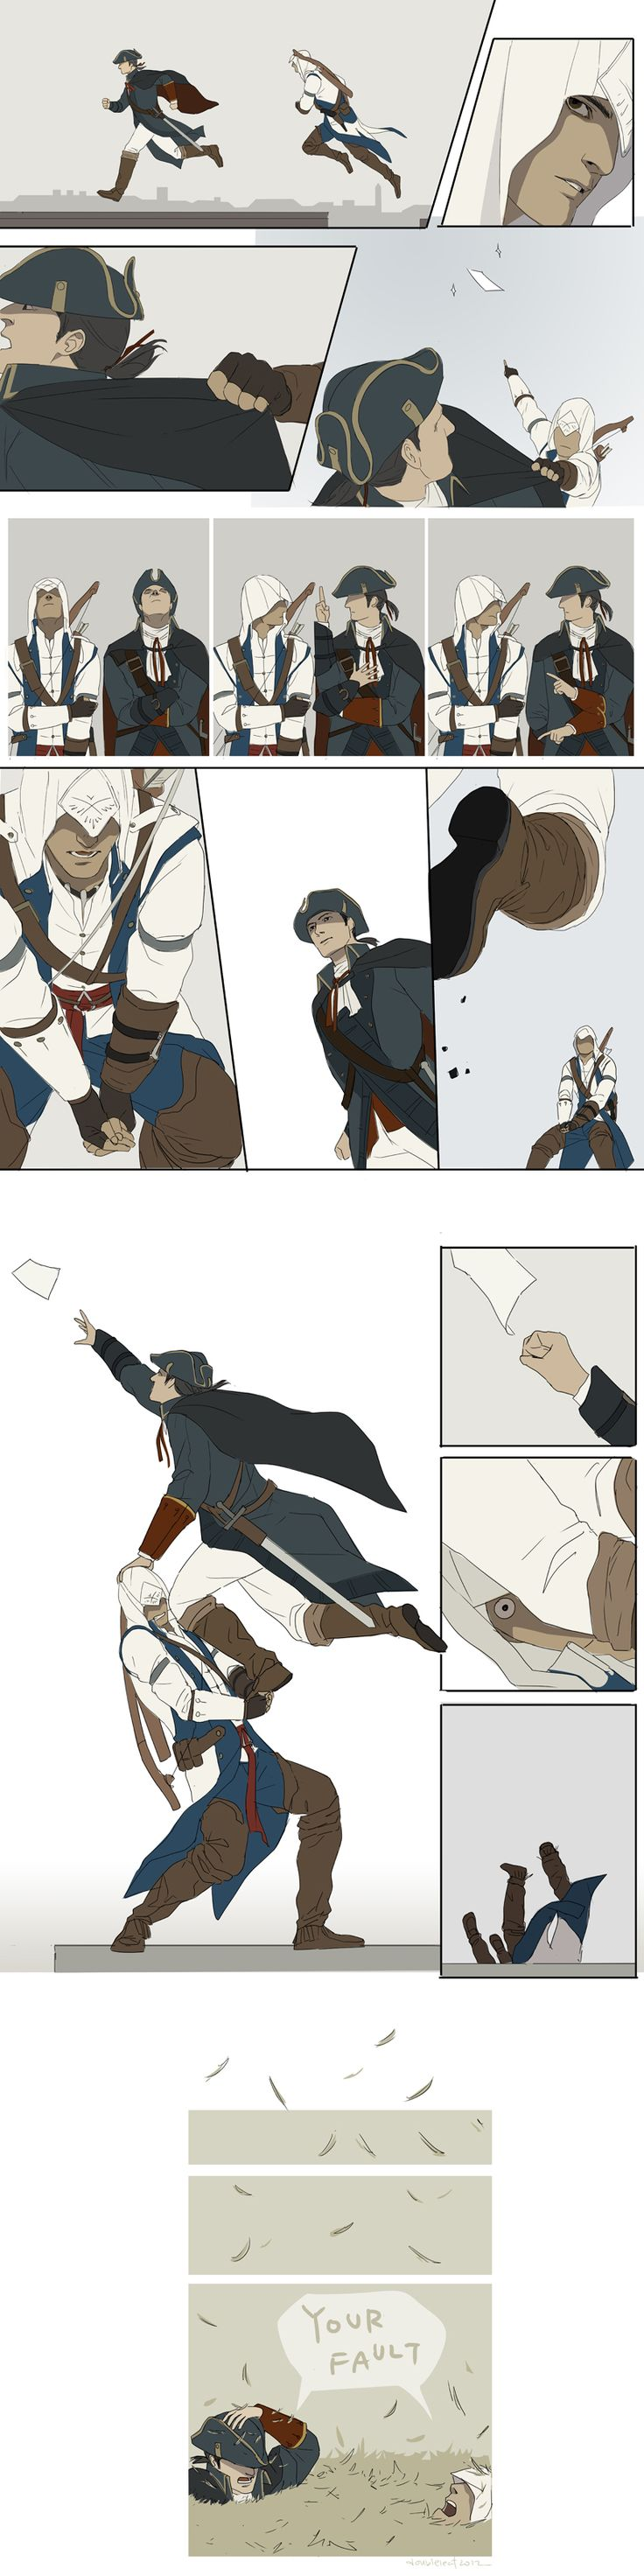 AC3 - Whose Fault by doubleleaf.deviantart.com | Fucking pages make me want to kick babies.